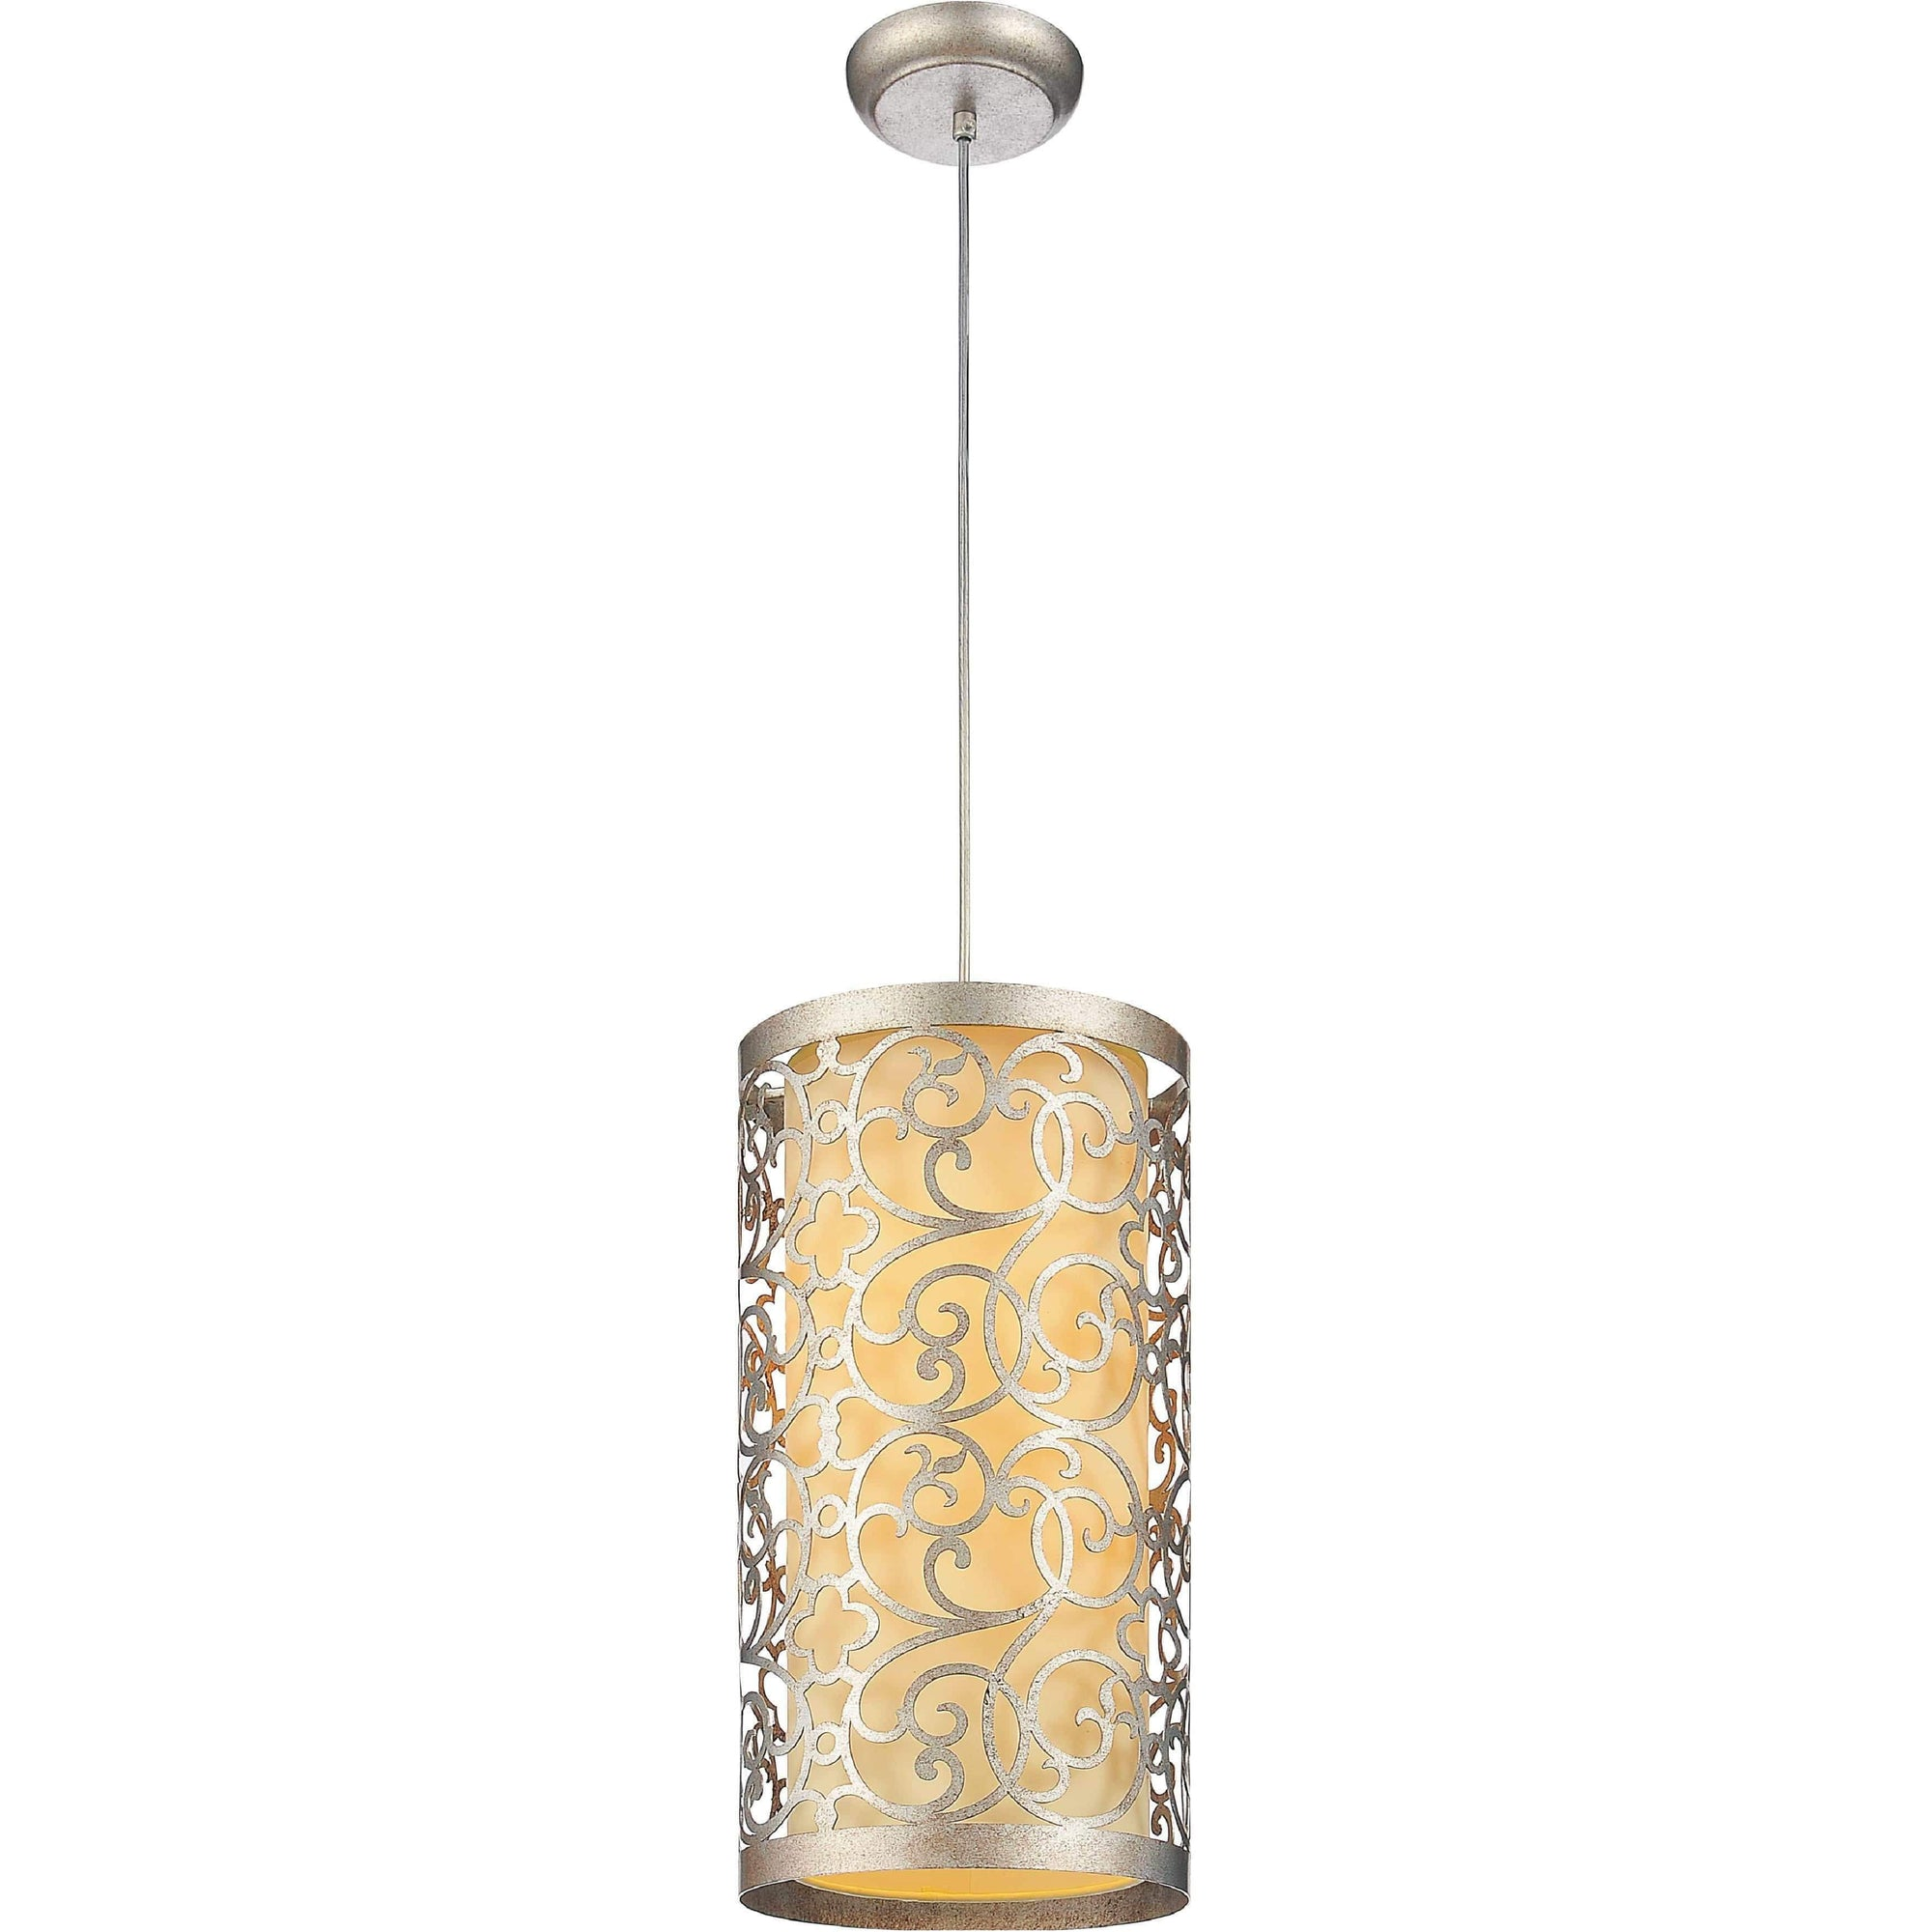 CWI Lighting Pendants Rubbed Silver Alexandra 2 Light Drum Shade Mini Pendant with Rubbed Silver finish by CWI Lighting 9832P8-2-106